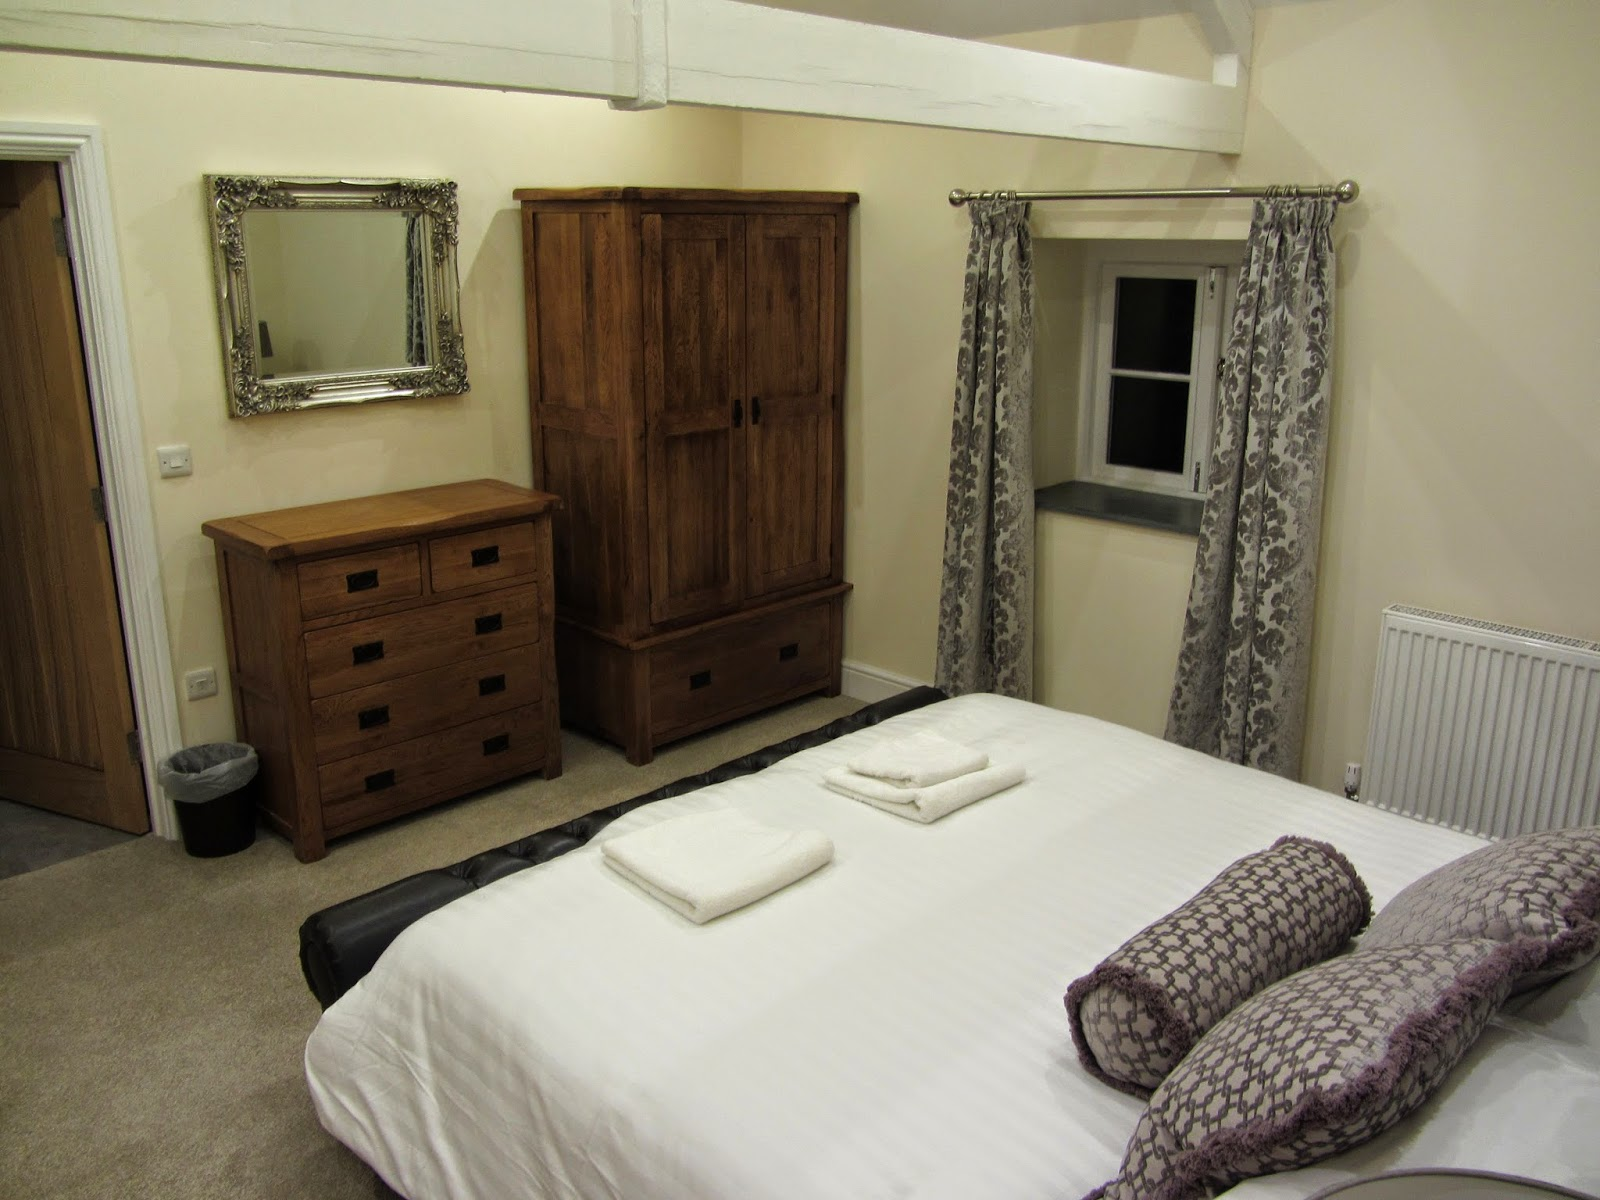 Phillack - St Erth, holidaycottages.co.uk